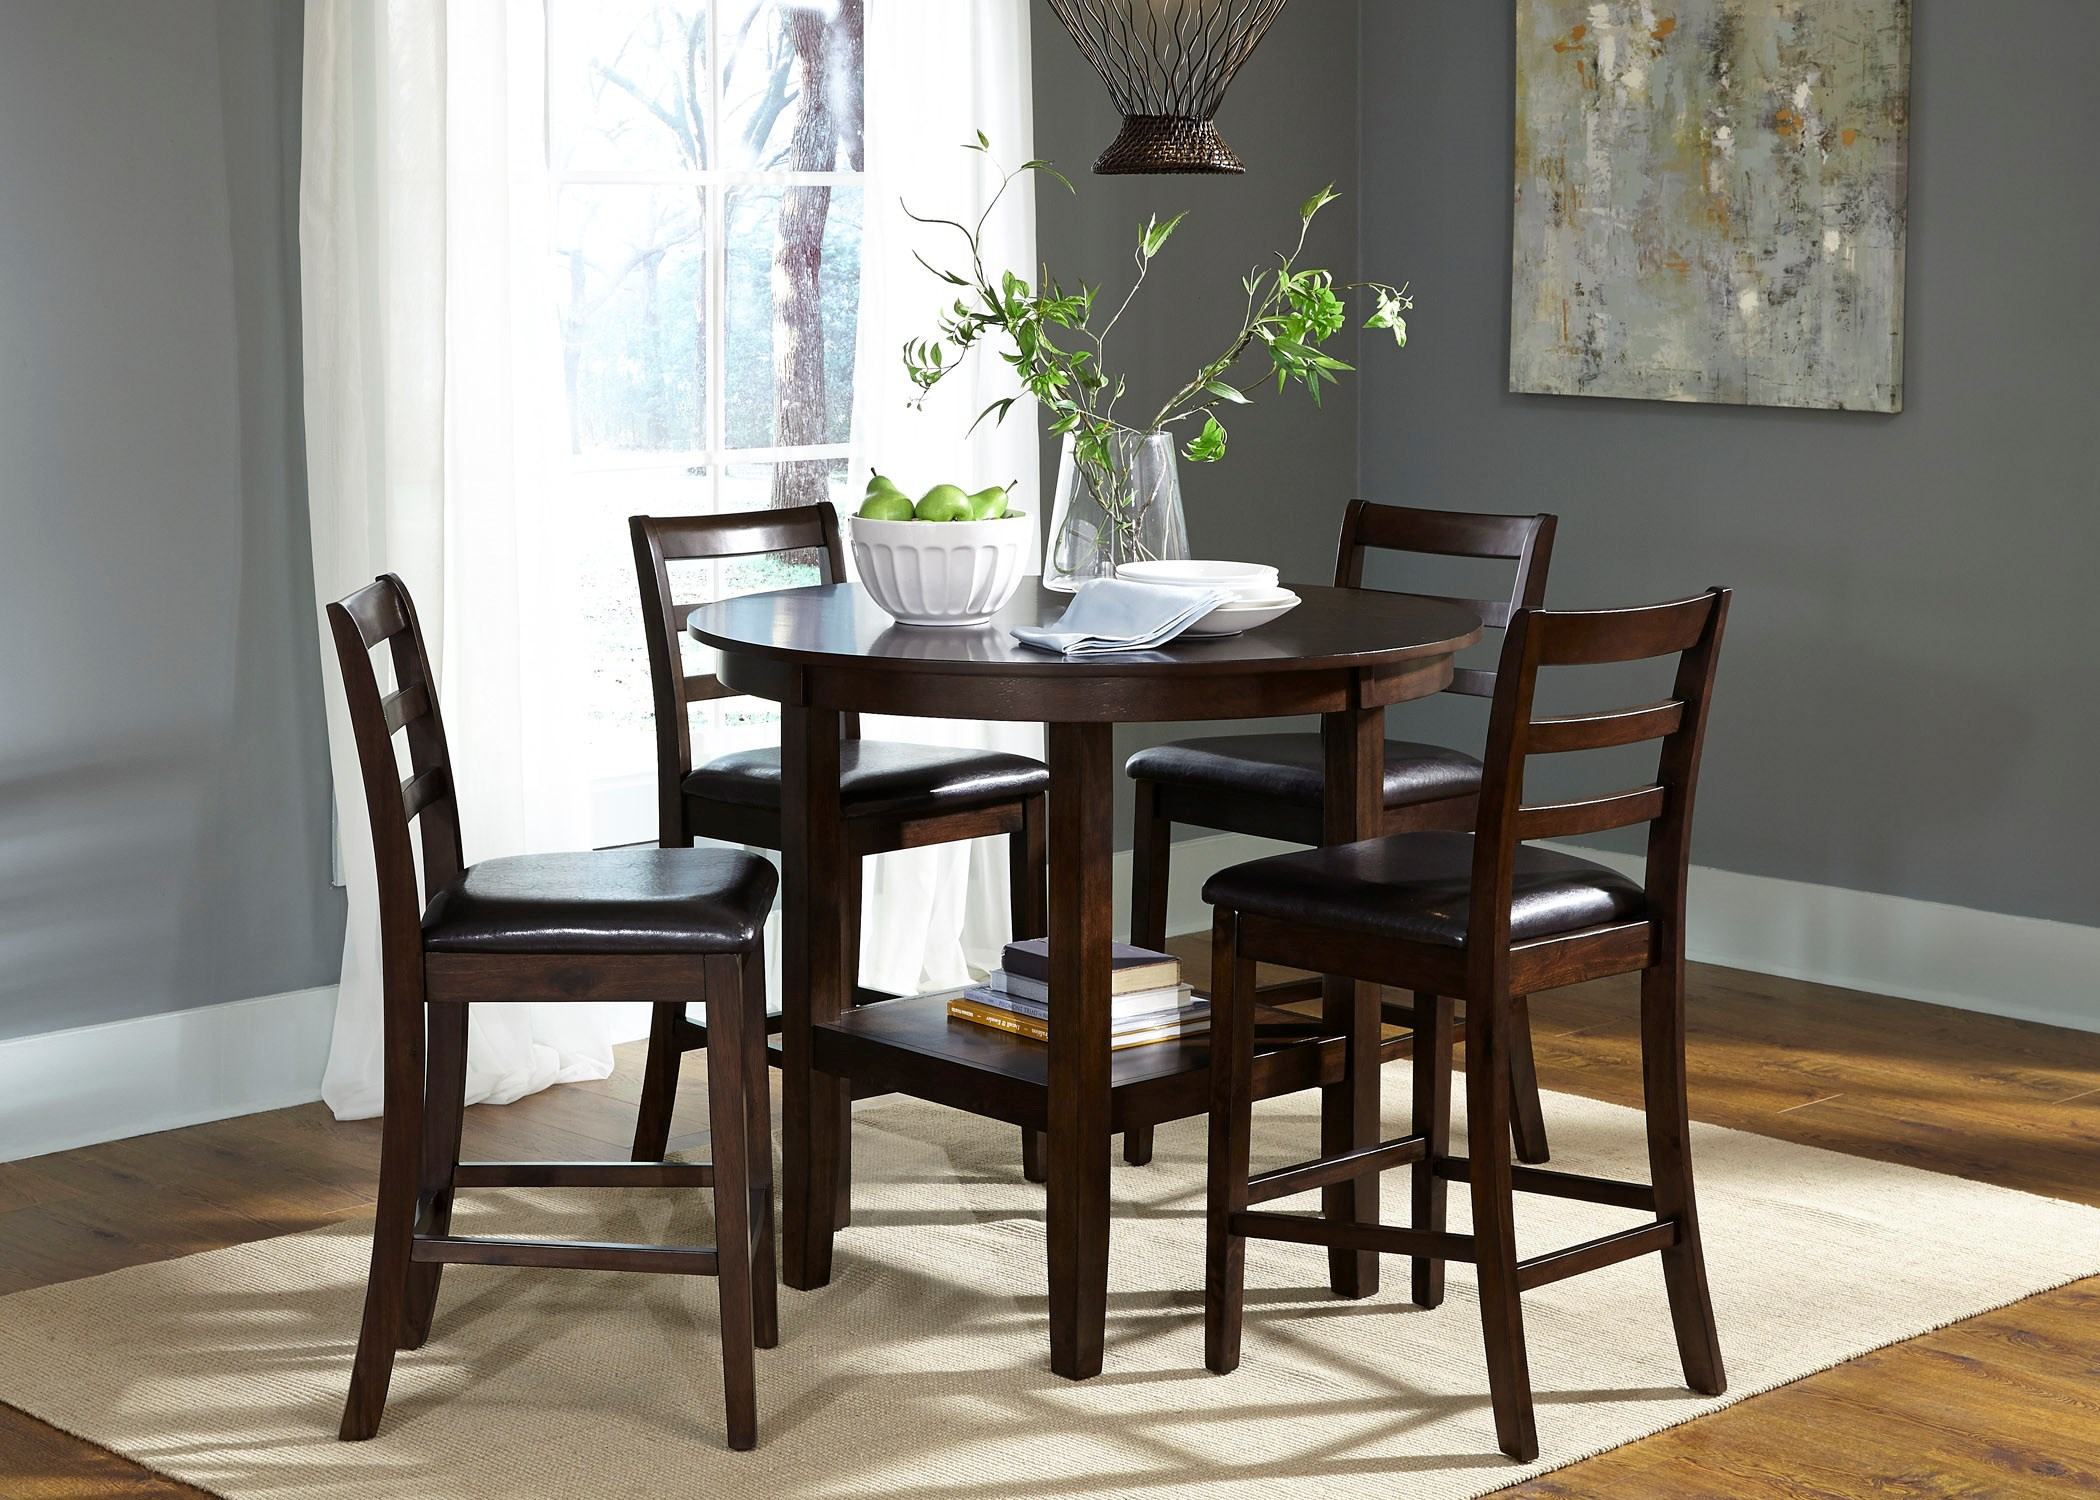 Beau Liberty Furniture Bradshaw Casual Dining 5 Piece Round Pub Table And  Ladderback Chair Set